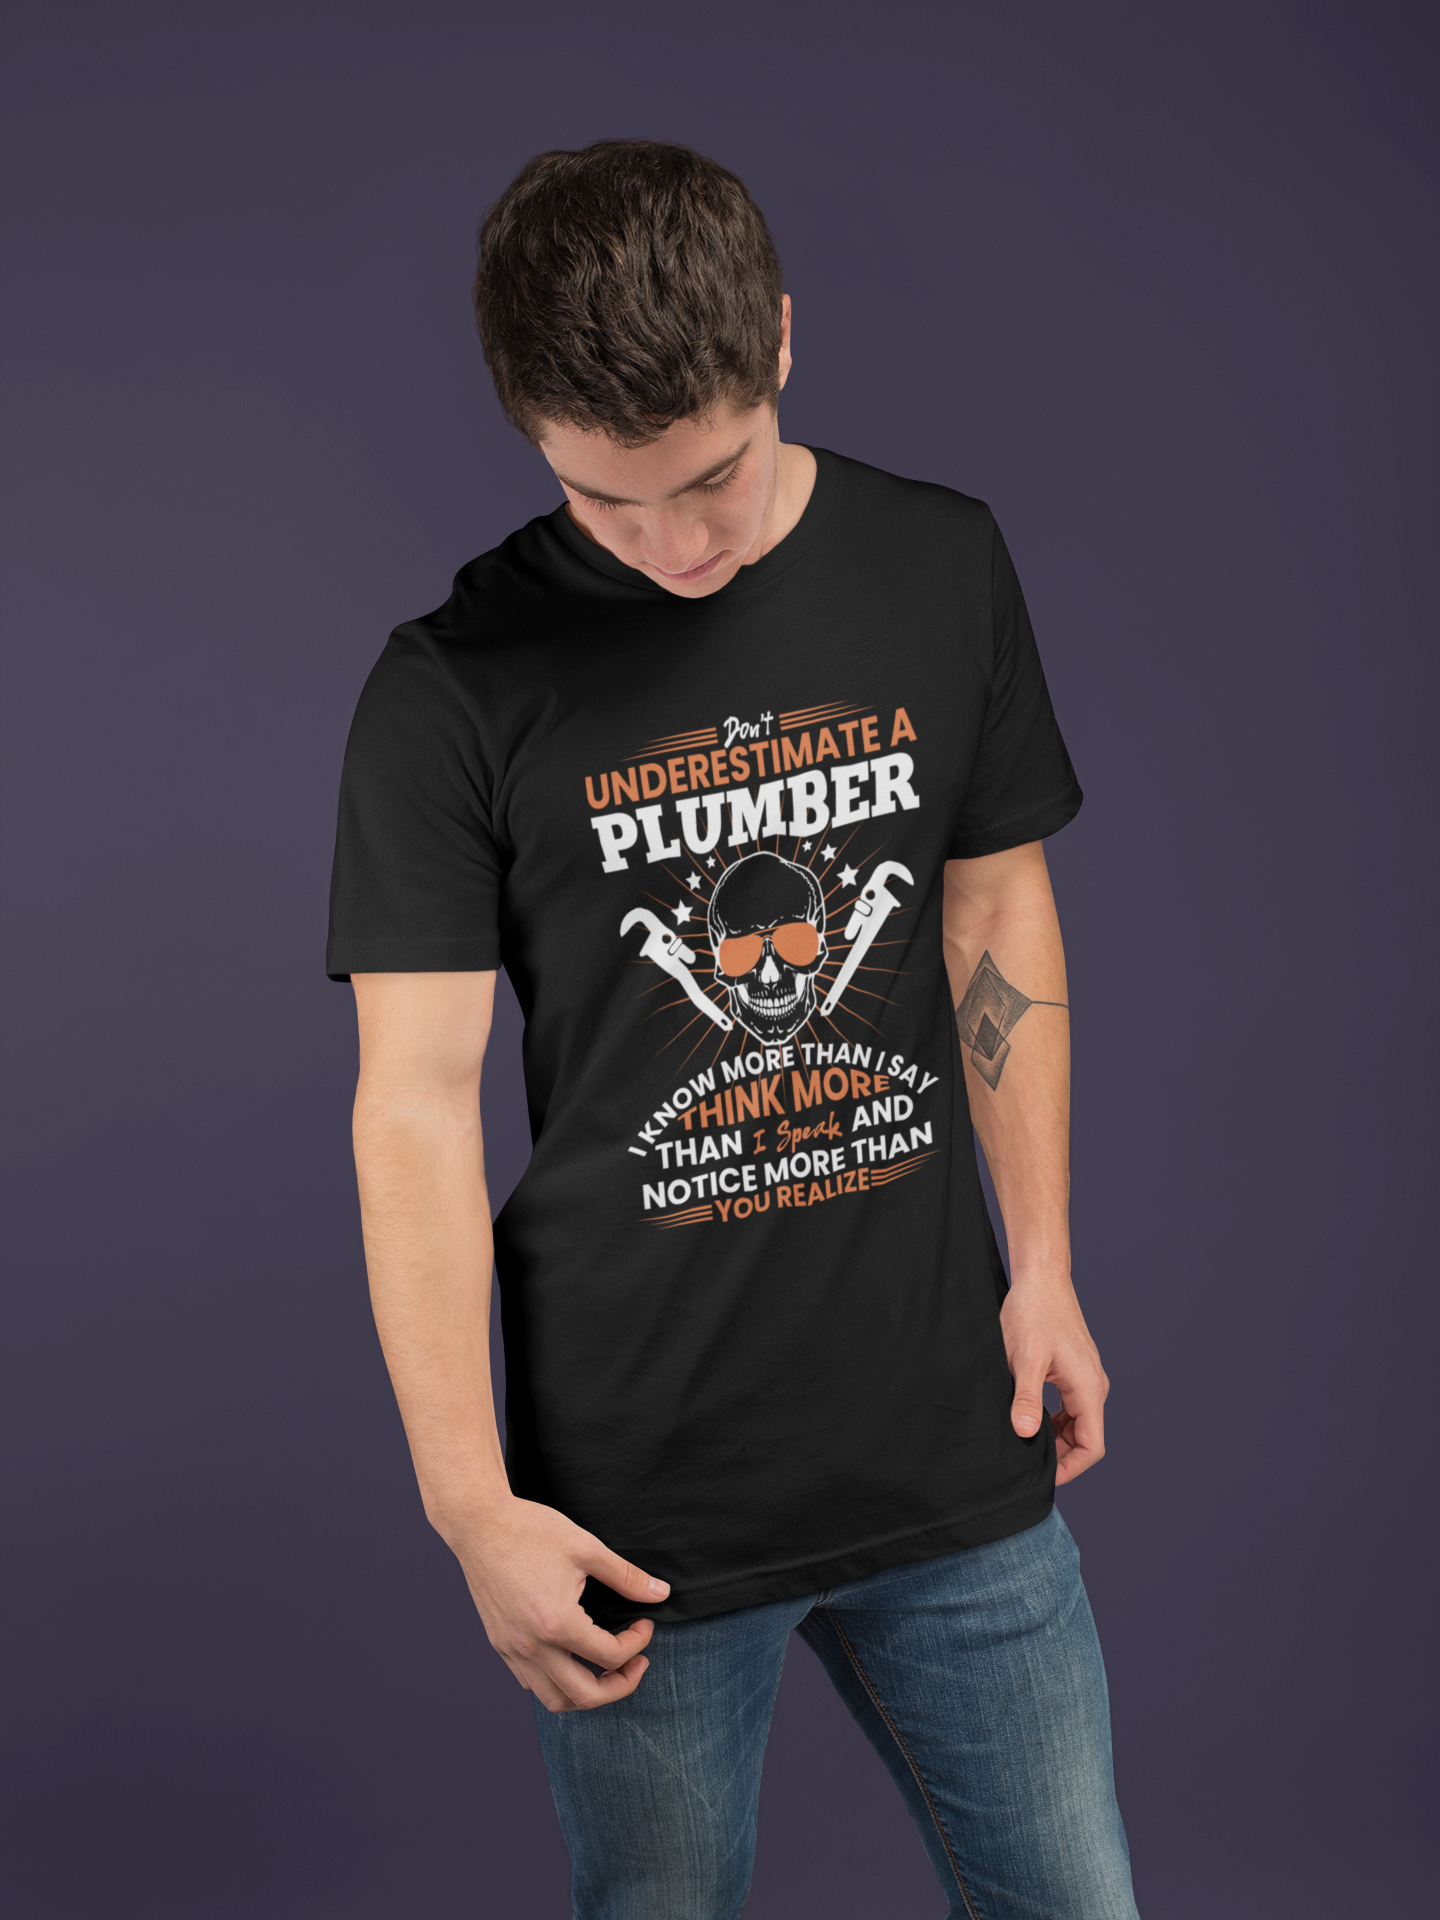 tshirt-mockup-of-a-man-with-a-tattoo-at-a-studio-25287.png